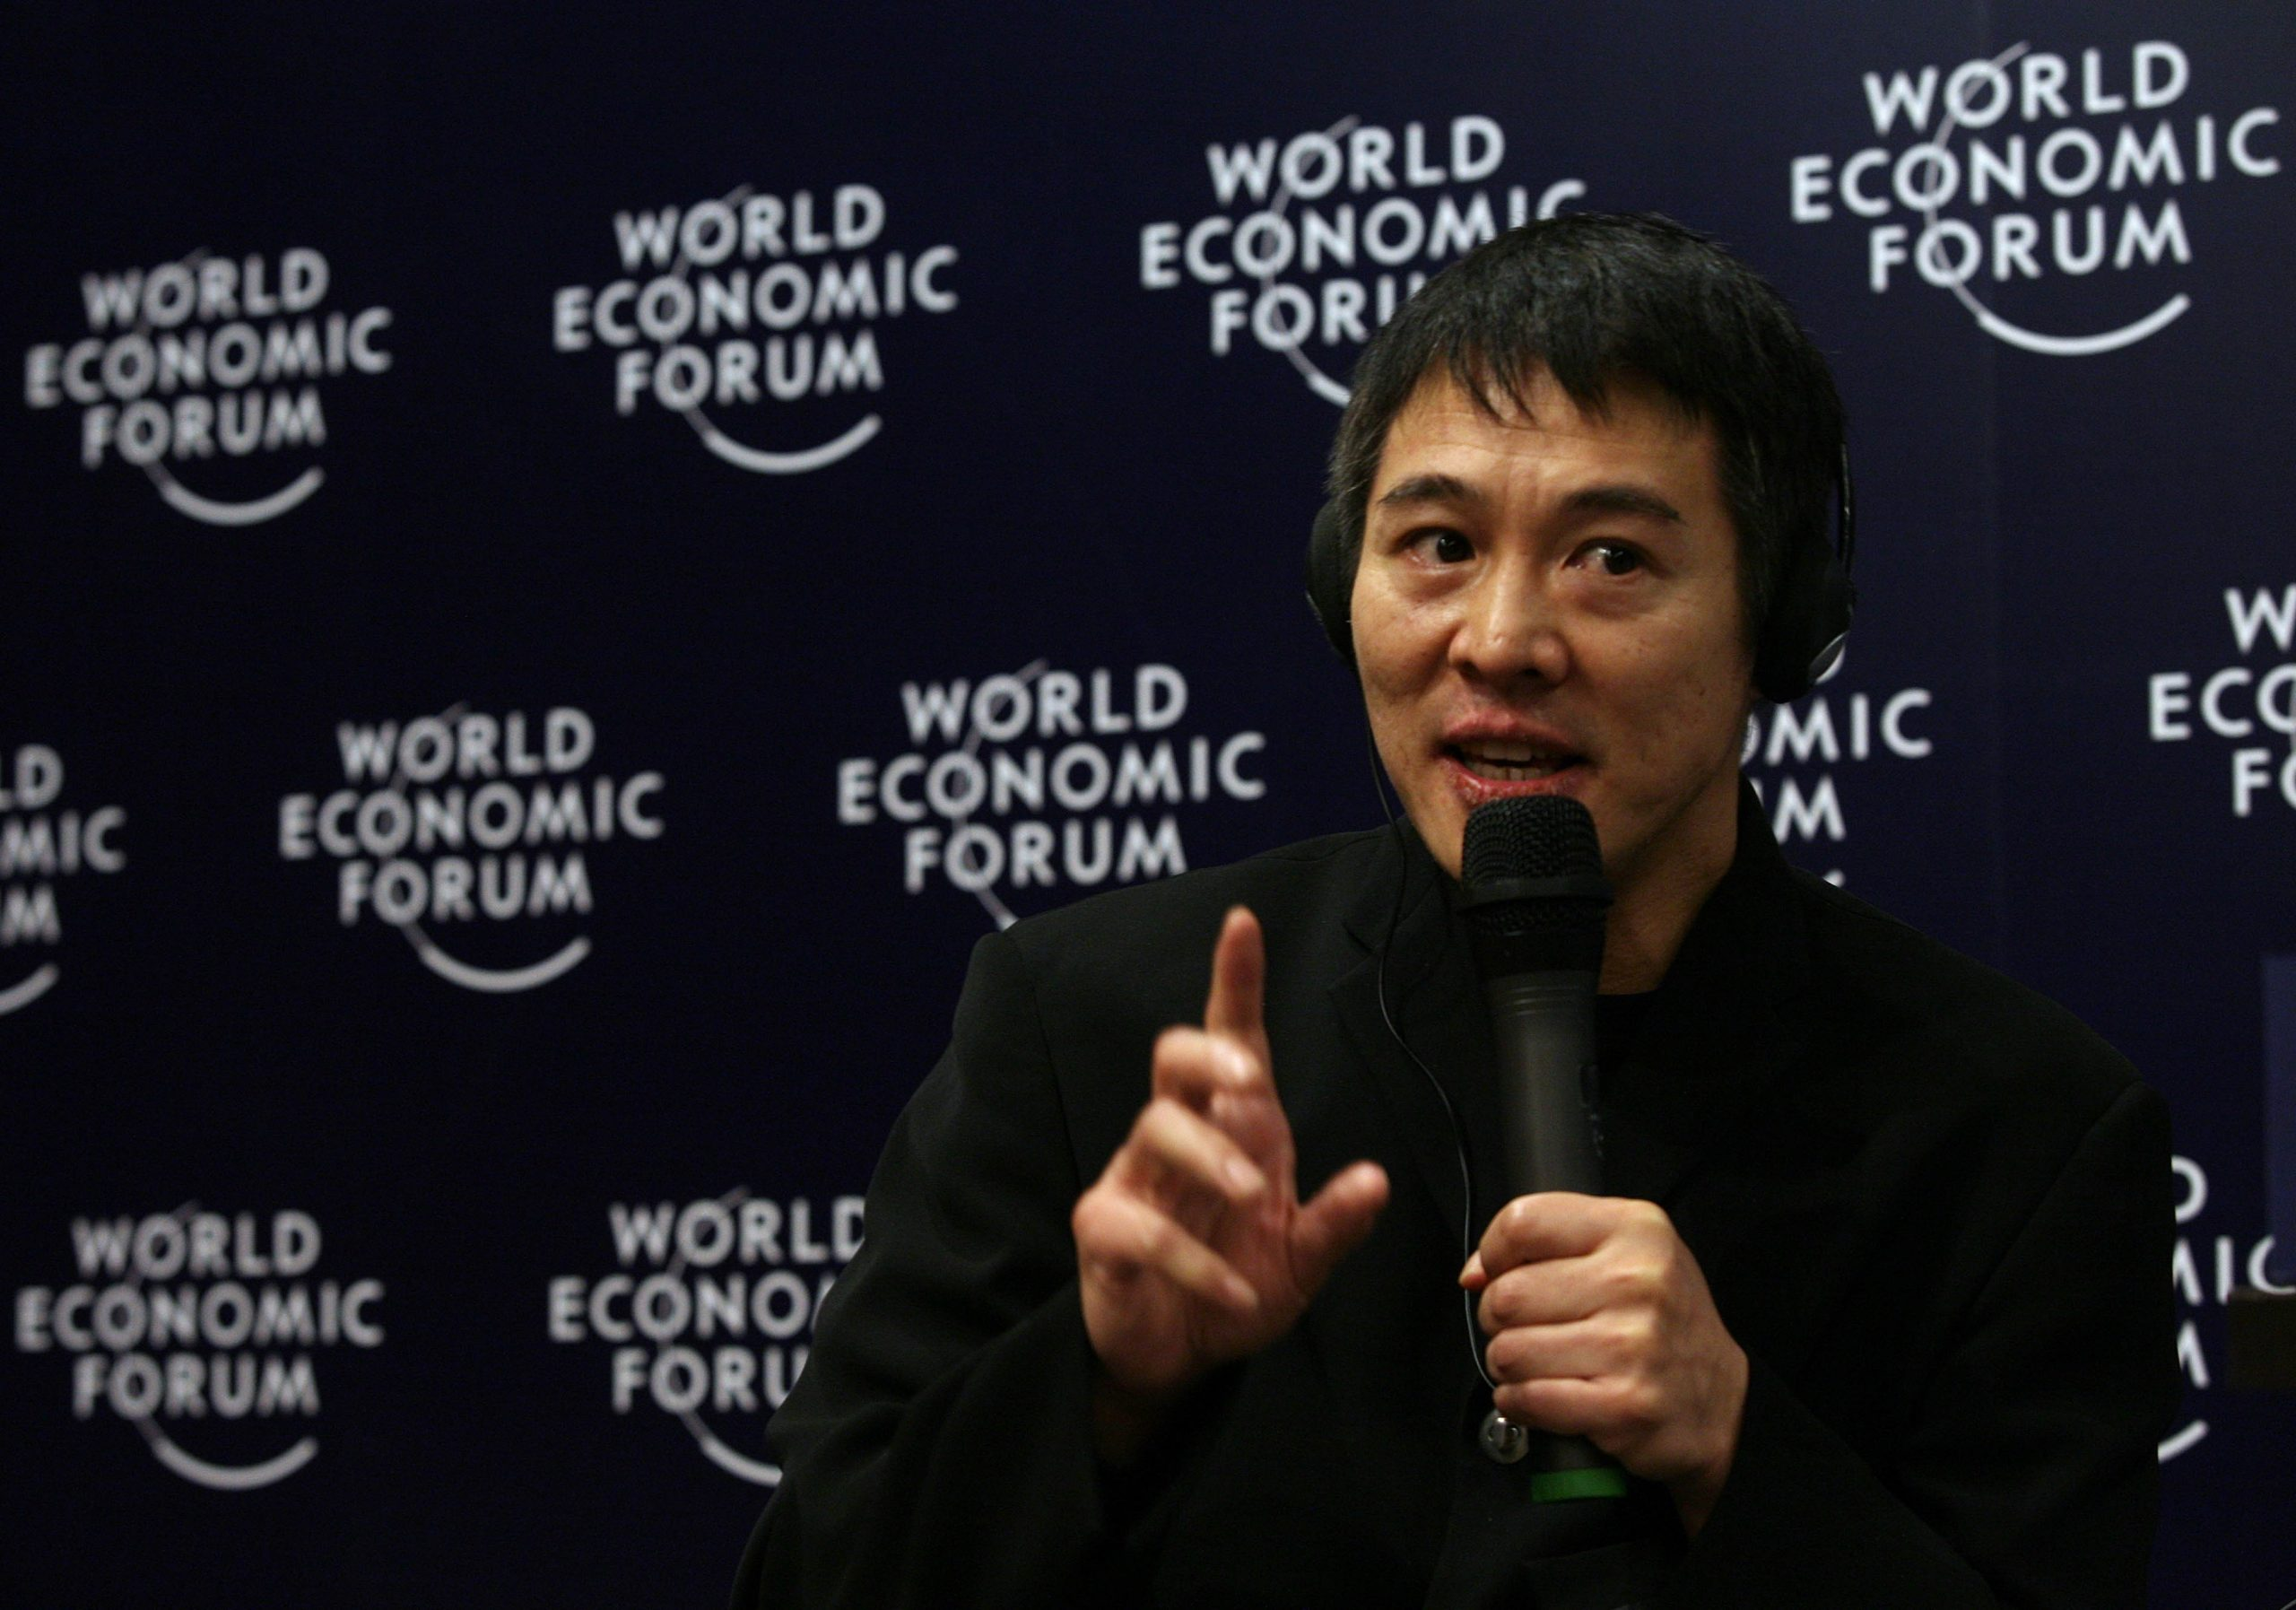 Has Jet Li ever bought Bitcoin or traded cryptocurrency?